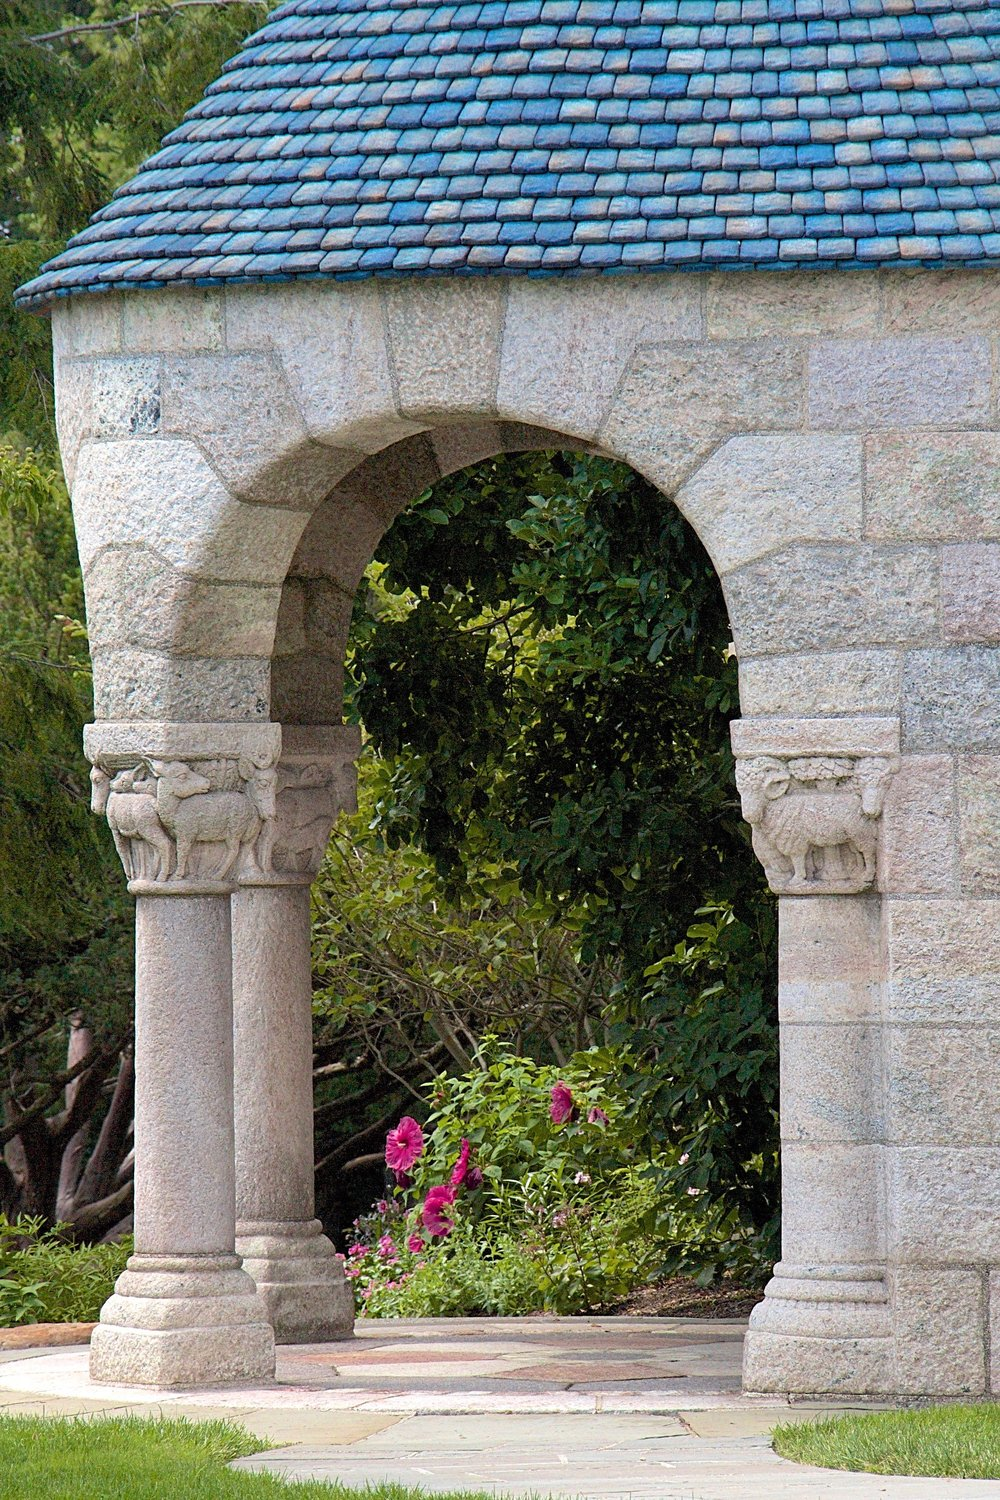 Figure 1: A portico on Glencairn's southwest corner leads into the cloister.